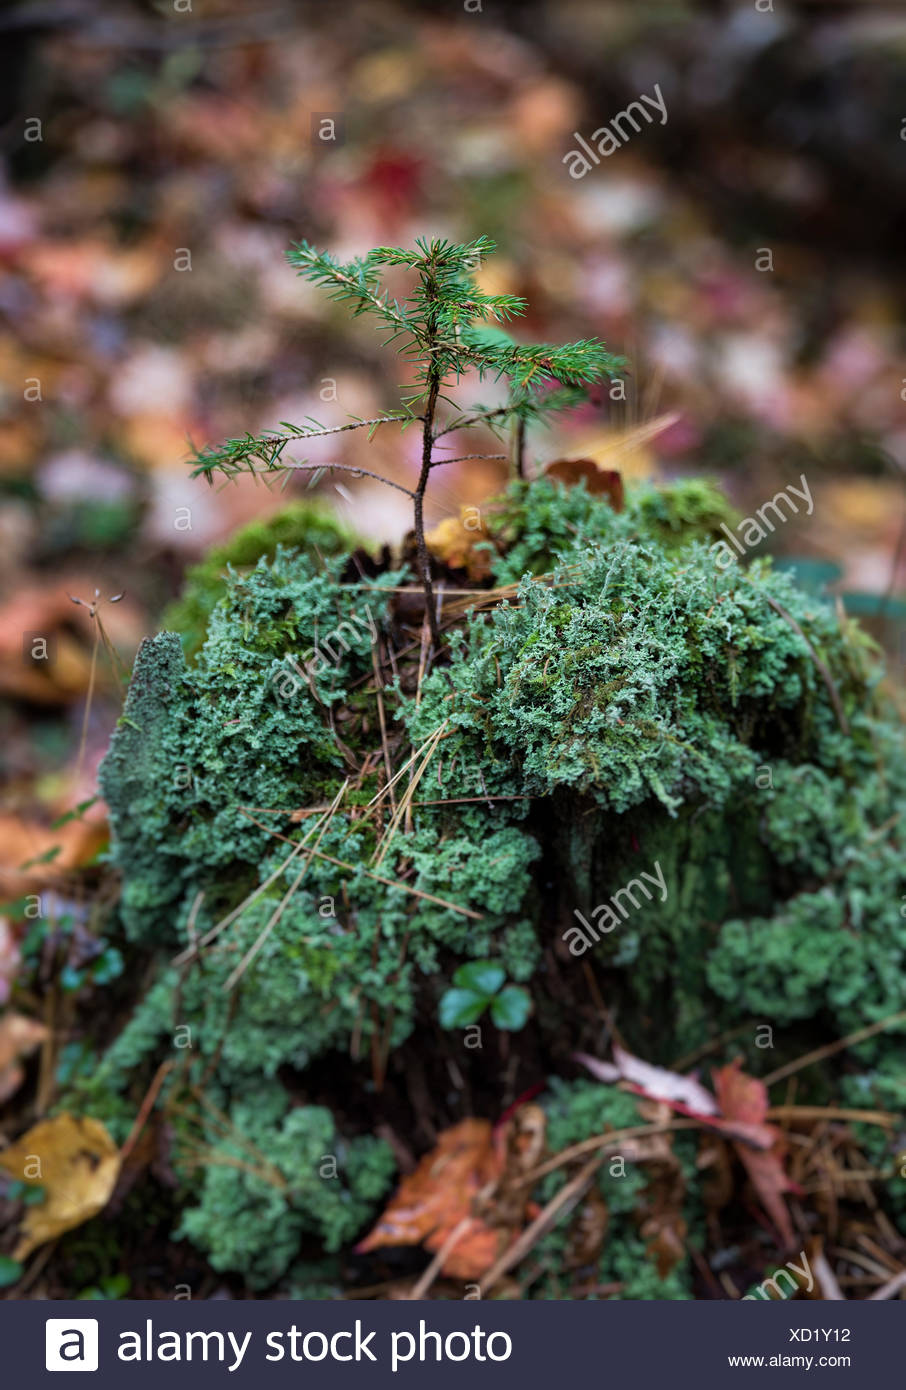 Fragile conifer seedling growing from the decayed trunk of a tree, New Hampshire, USA - Stock Image